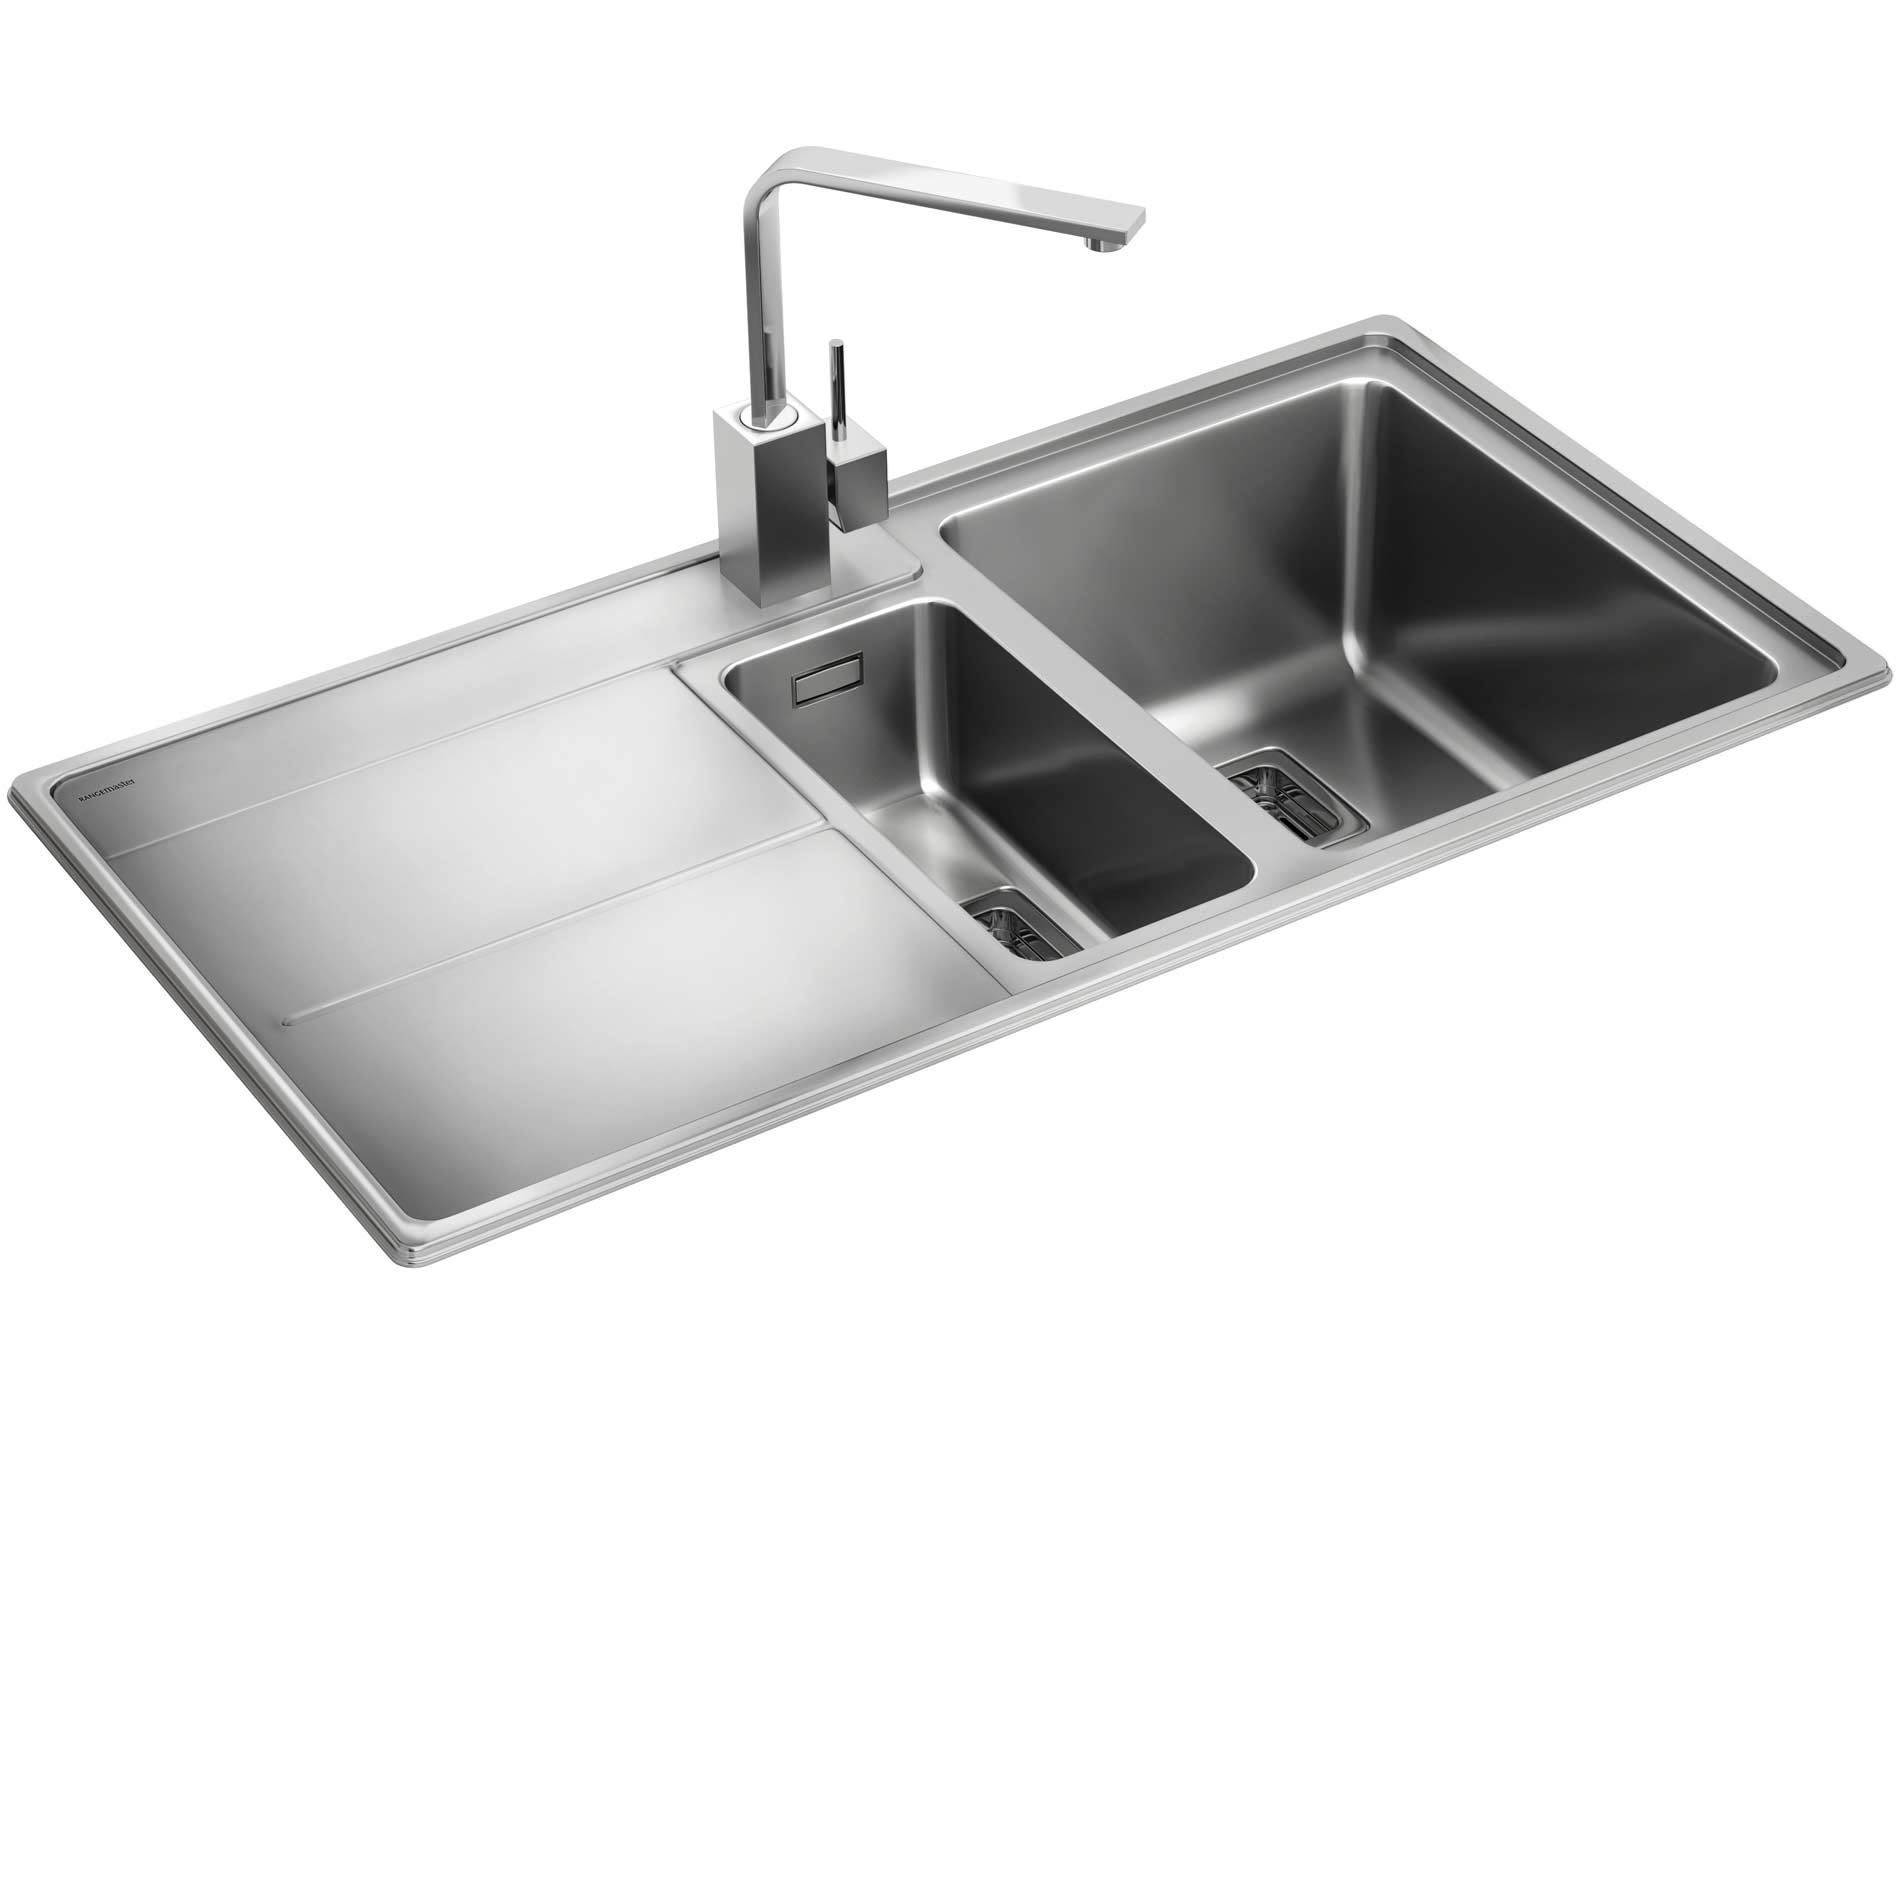 Rangemaster: Arlington AR9852 Stainless Steel Sink - Kitchen Sinks ...